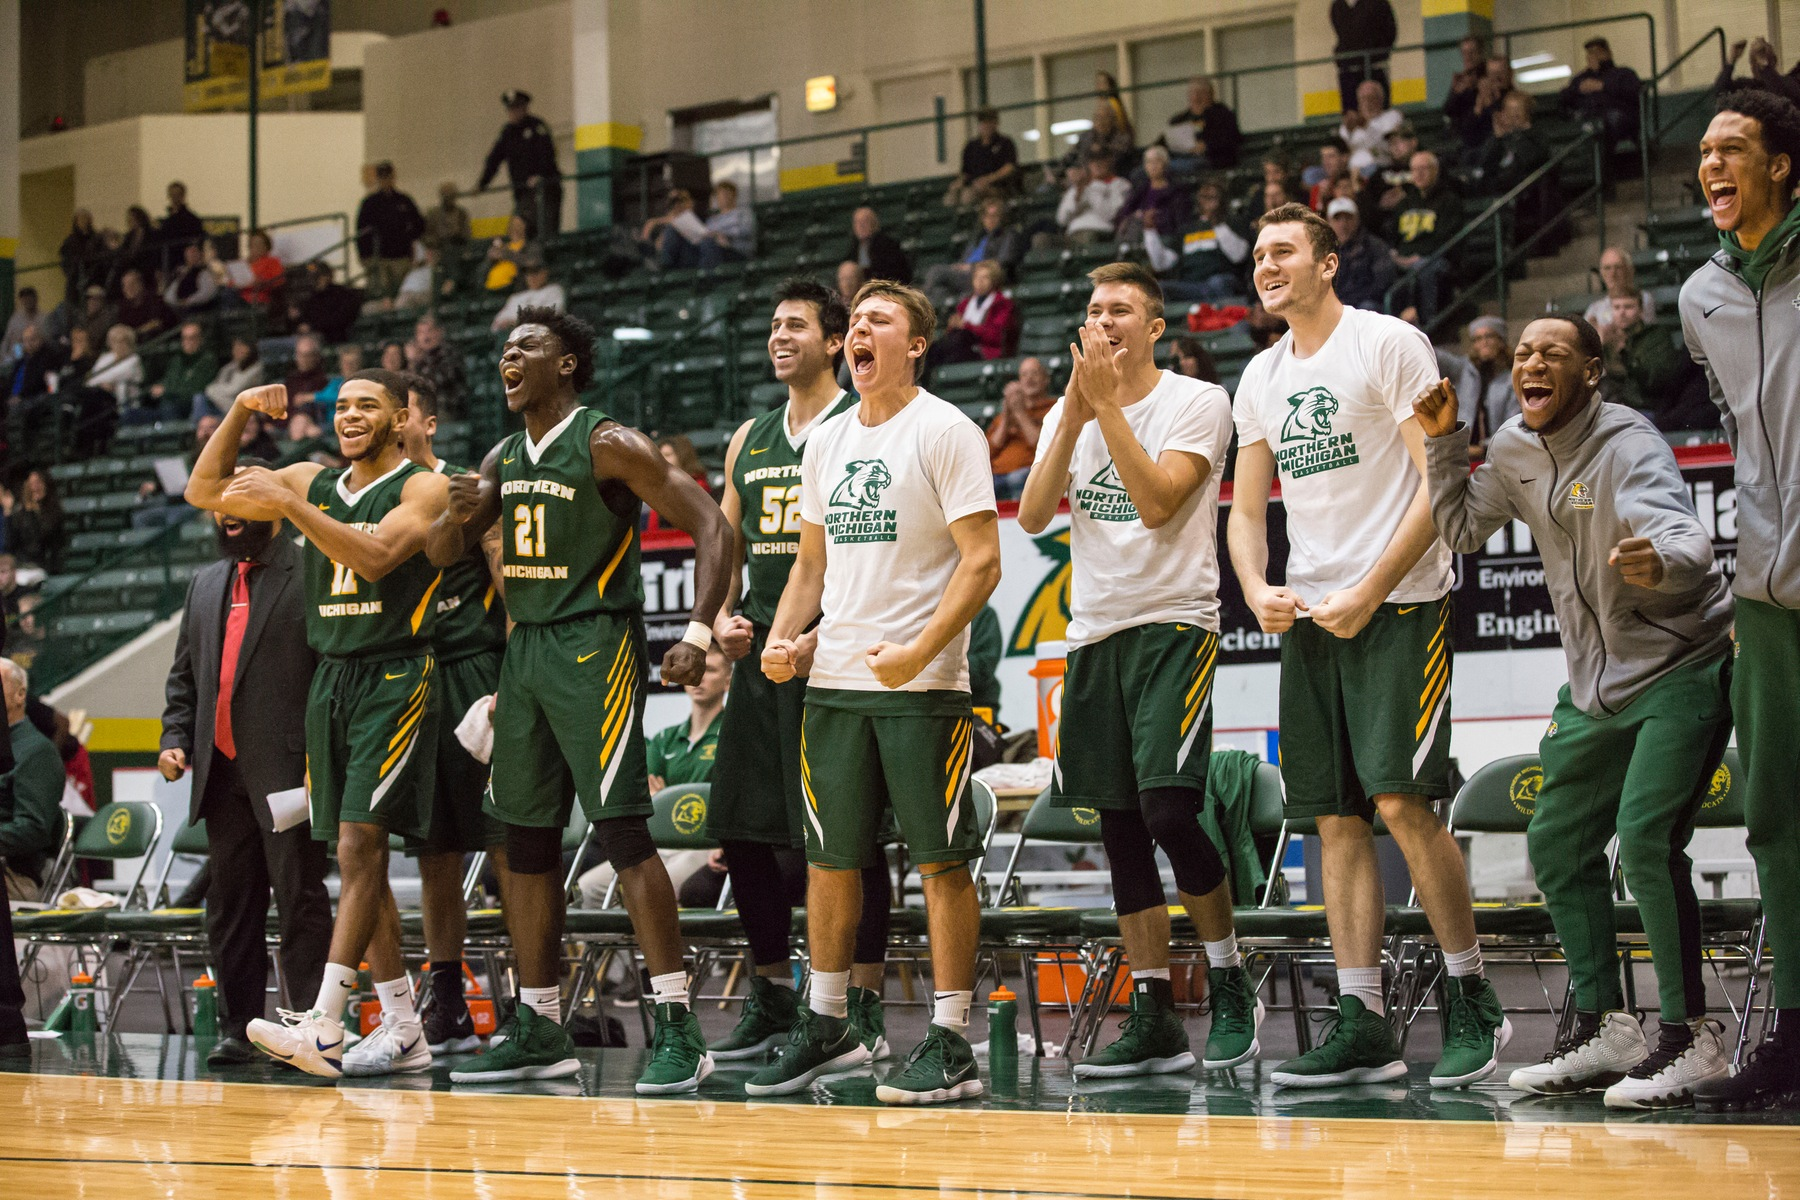 Men's Basketball Wins 93-70 in Season Opener